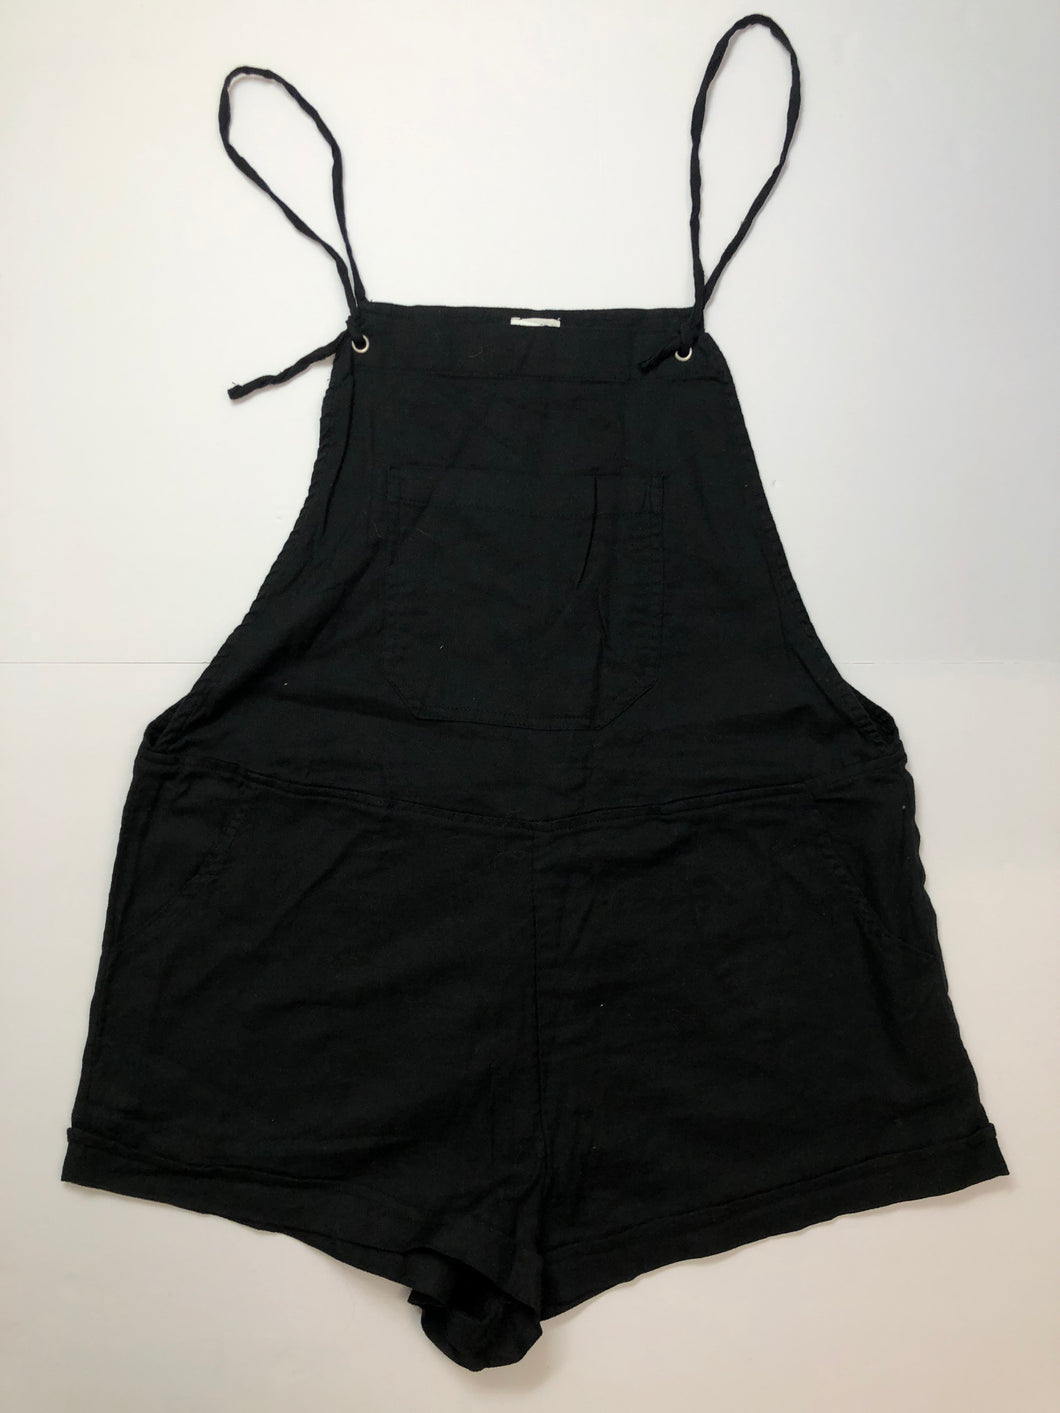 Gently Used Women's Garage Romper Size L